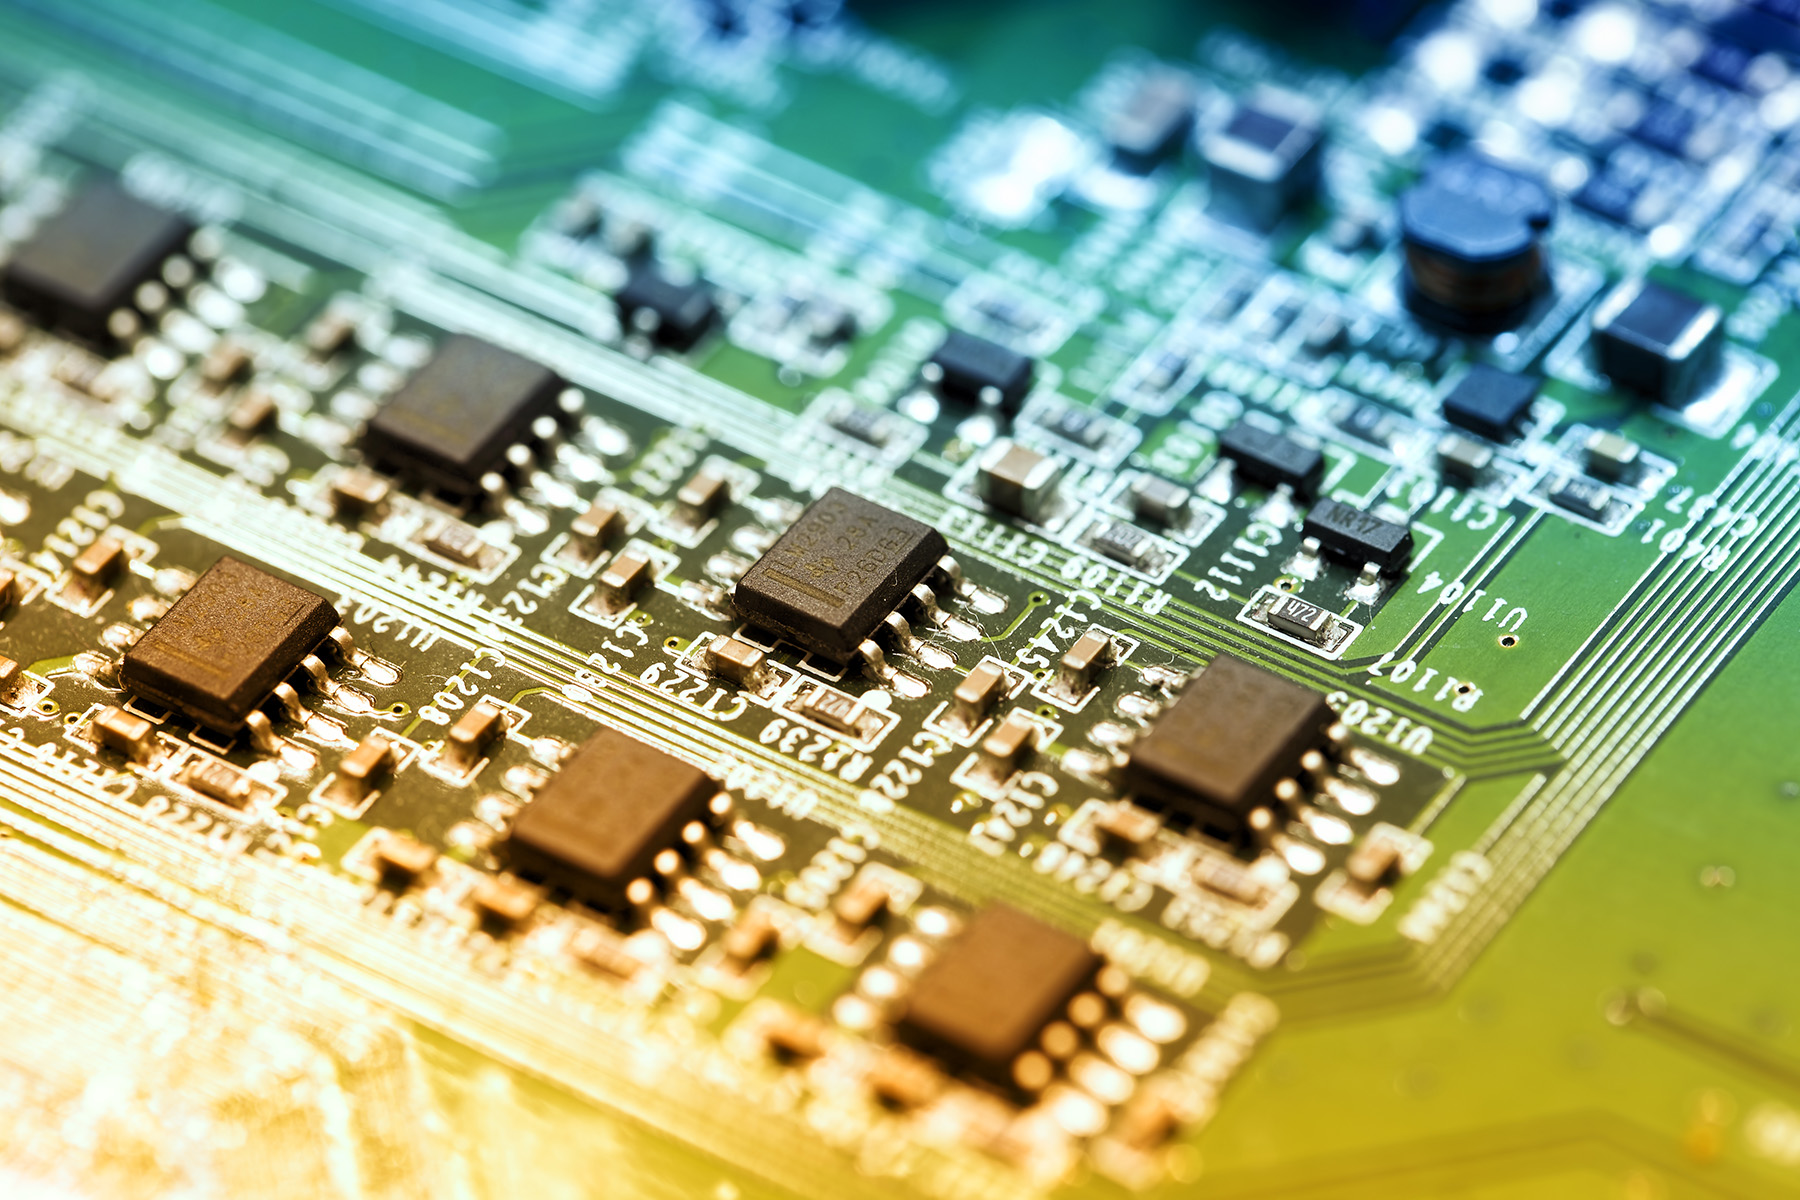 Electronic components on the motherboard 51221